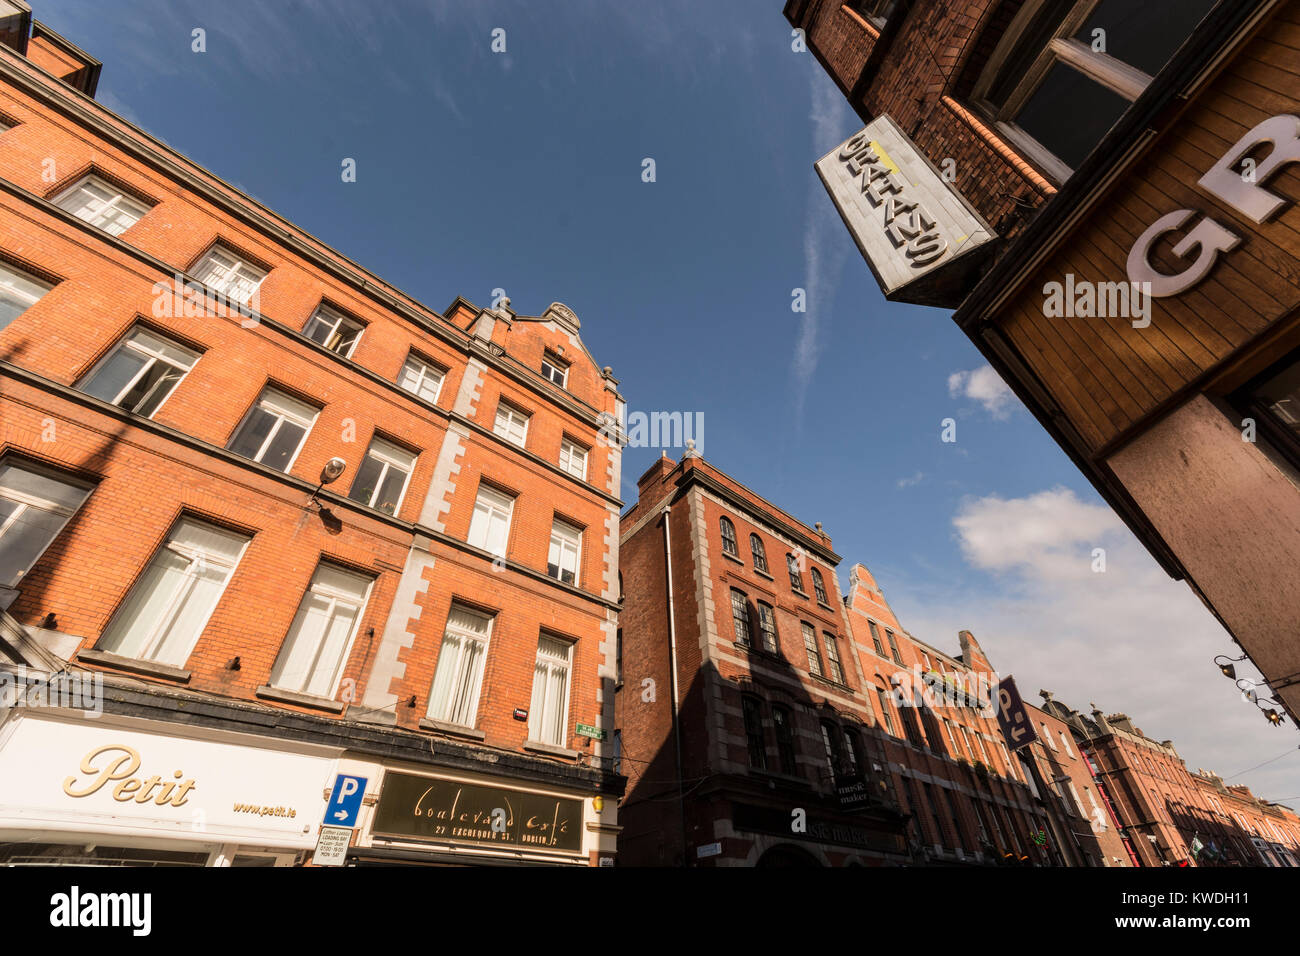 Drury street cross with Exchequer St. Downtown Dublin. Ireland - Stock Image